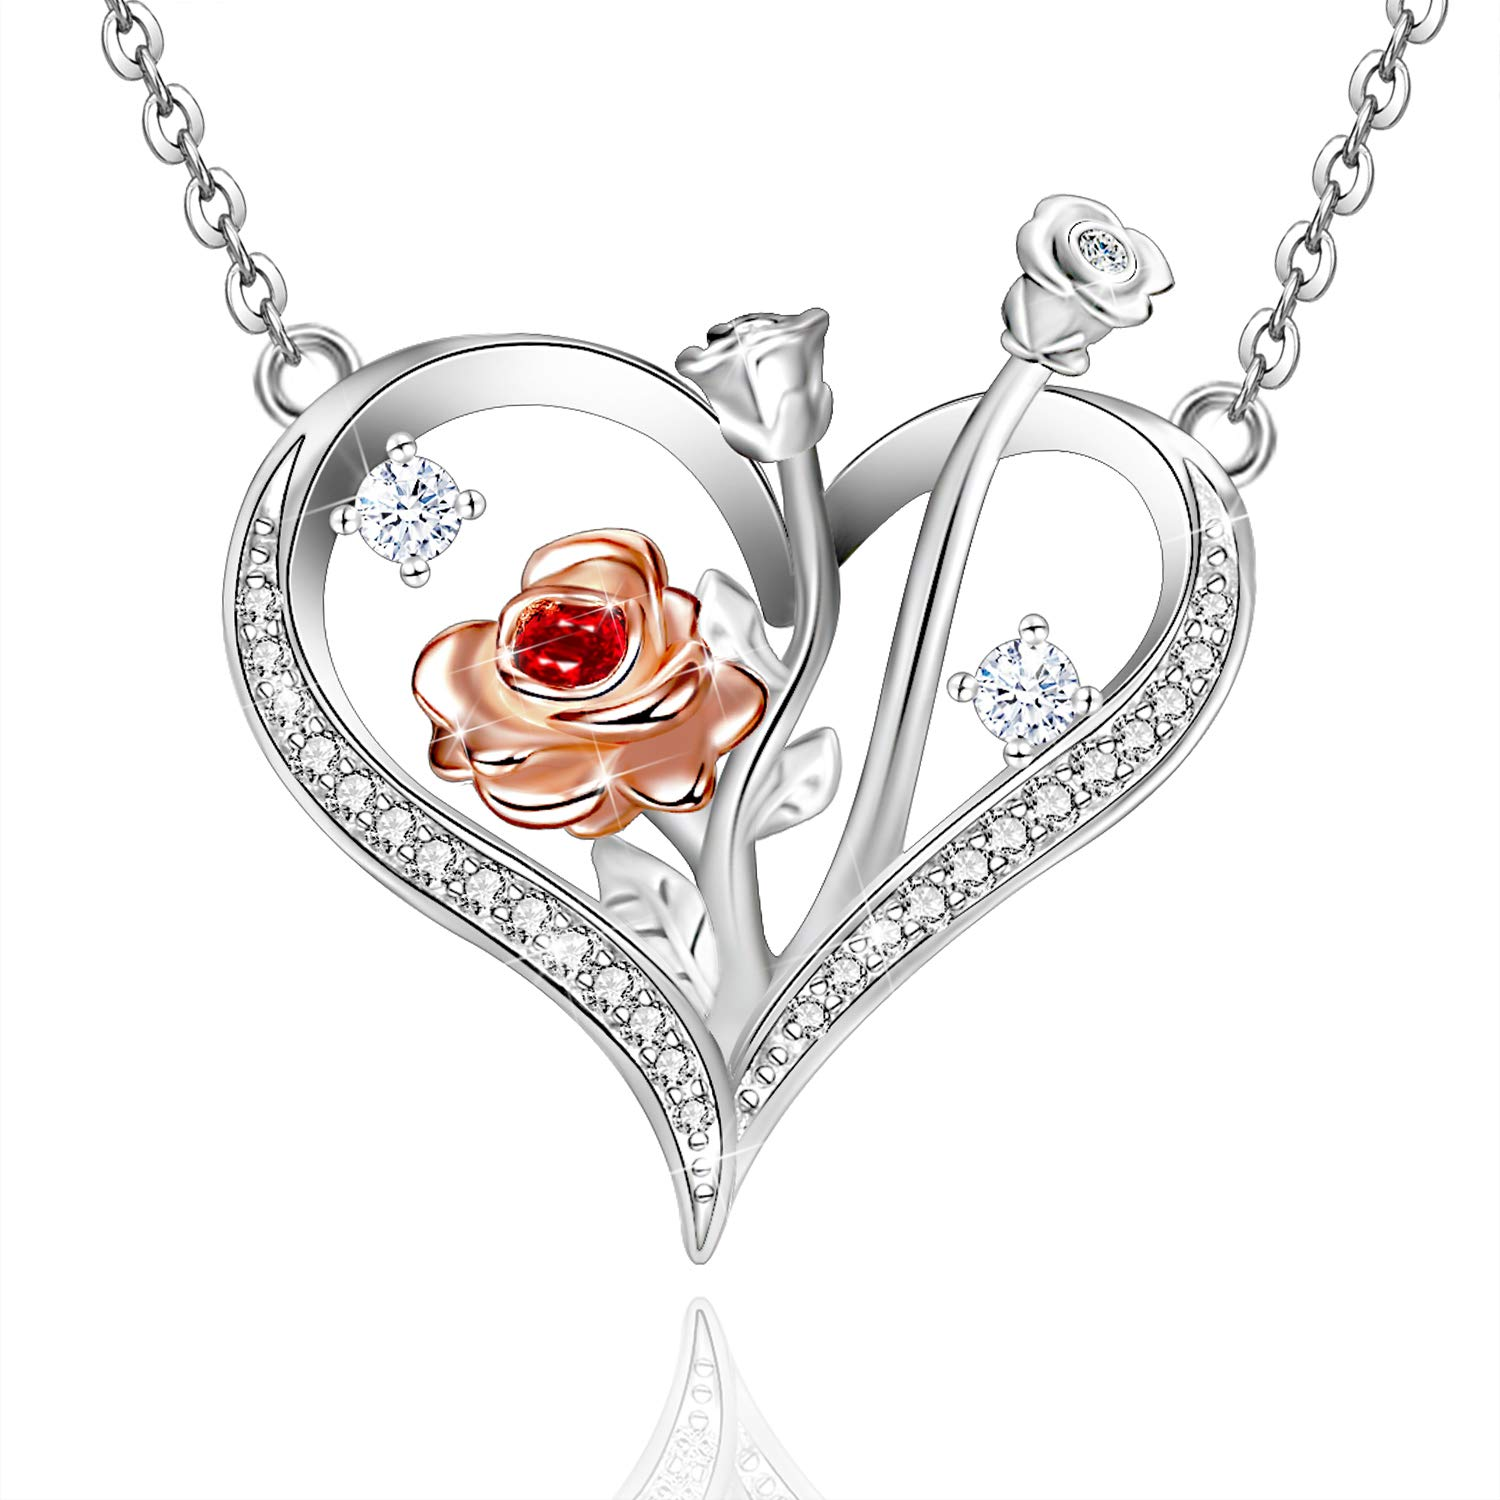 Distance Rose Necklace for Women 925 Sterling Silver Love Heart Rose Flower Necklaces for Family Friend Mother Daughter